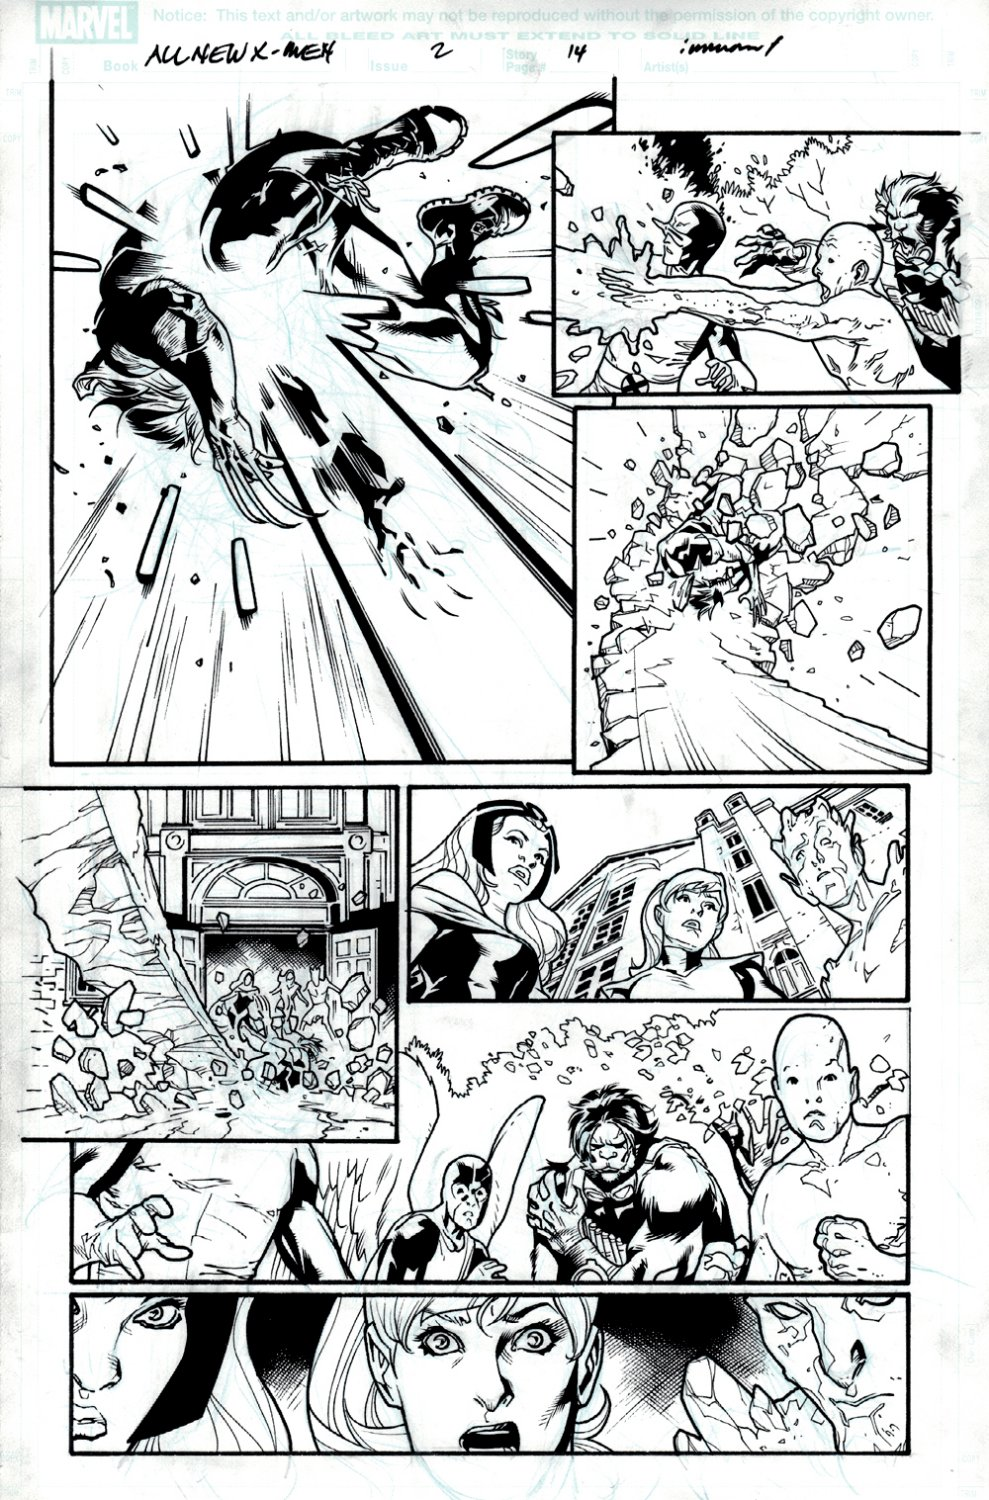 All-New X-Men #2 p 14 (ENTIRE TEAM ACTION PAGE!) 2012